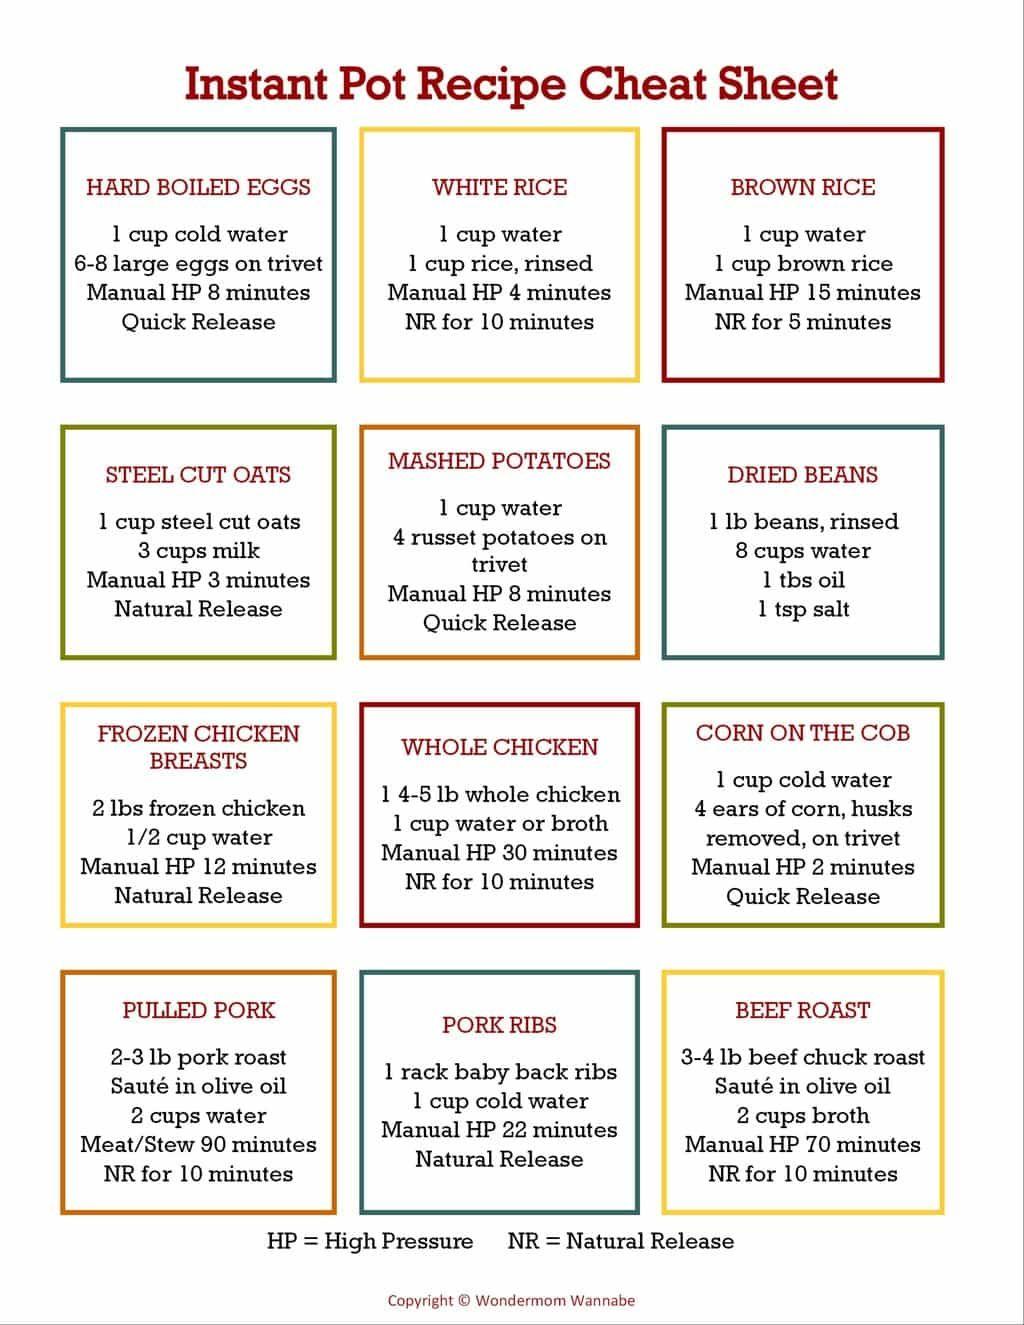 photograph regarding Instant Pot Cheat Sheet Printable titled Instantaneous Pot Recipe Cheat Sheet Instantaneous Pot inside 2019